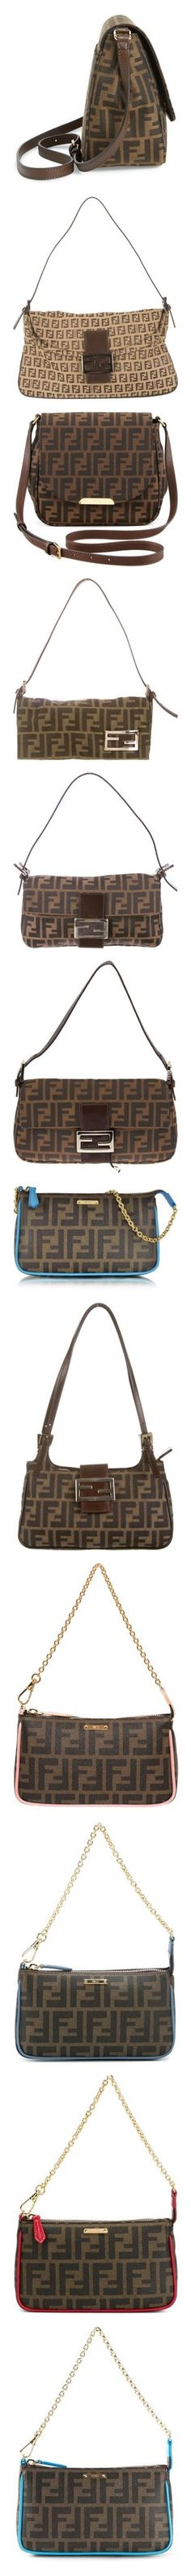 """Logo print bags"" by alenasb ❤ liked on Polyvore featuring bags, handbags, shoulder bags, brown cross body handbags, jacquard handbags, fendi purse, fendi shoulder bag, crossbody shoulder bag, brown and white purse"